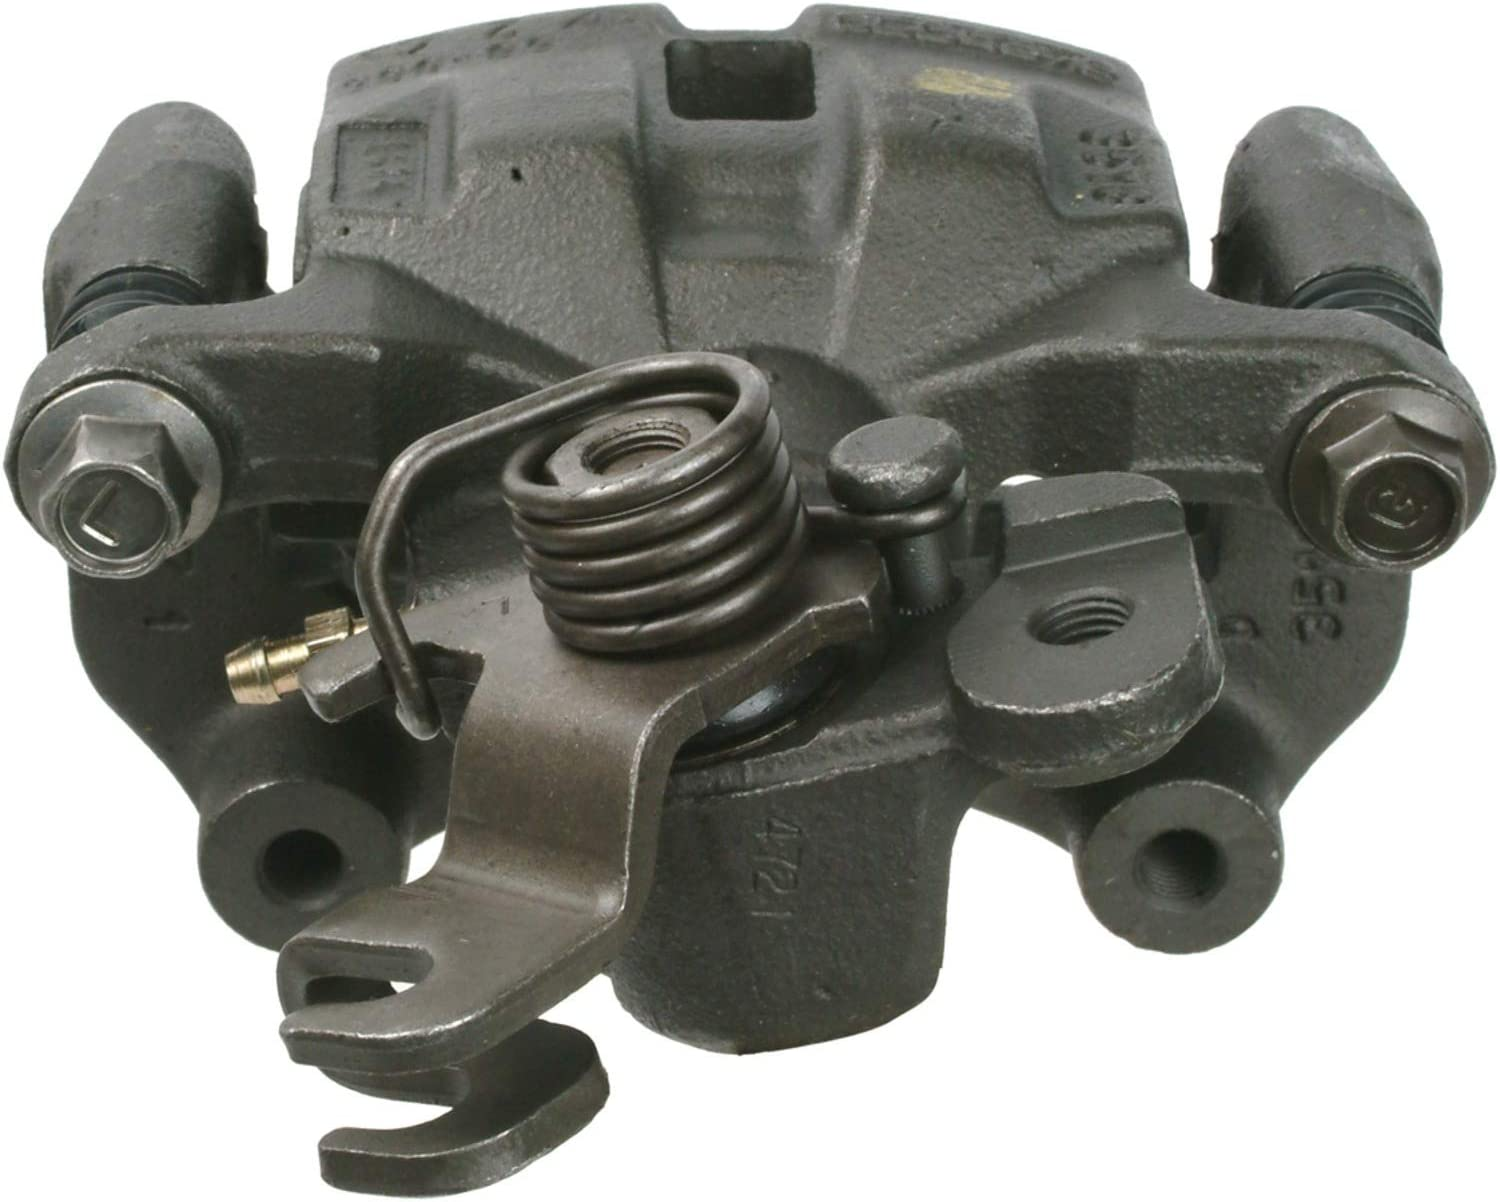 Cardone Limited time sale 19-B2858 Remanufactured Unloaded with Disc sale Caliper Brake